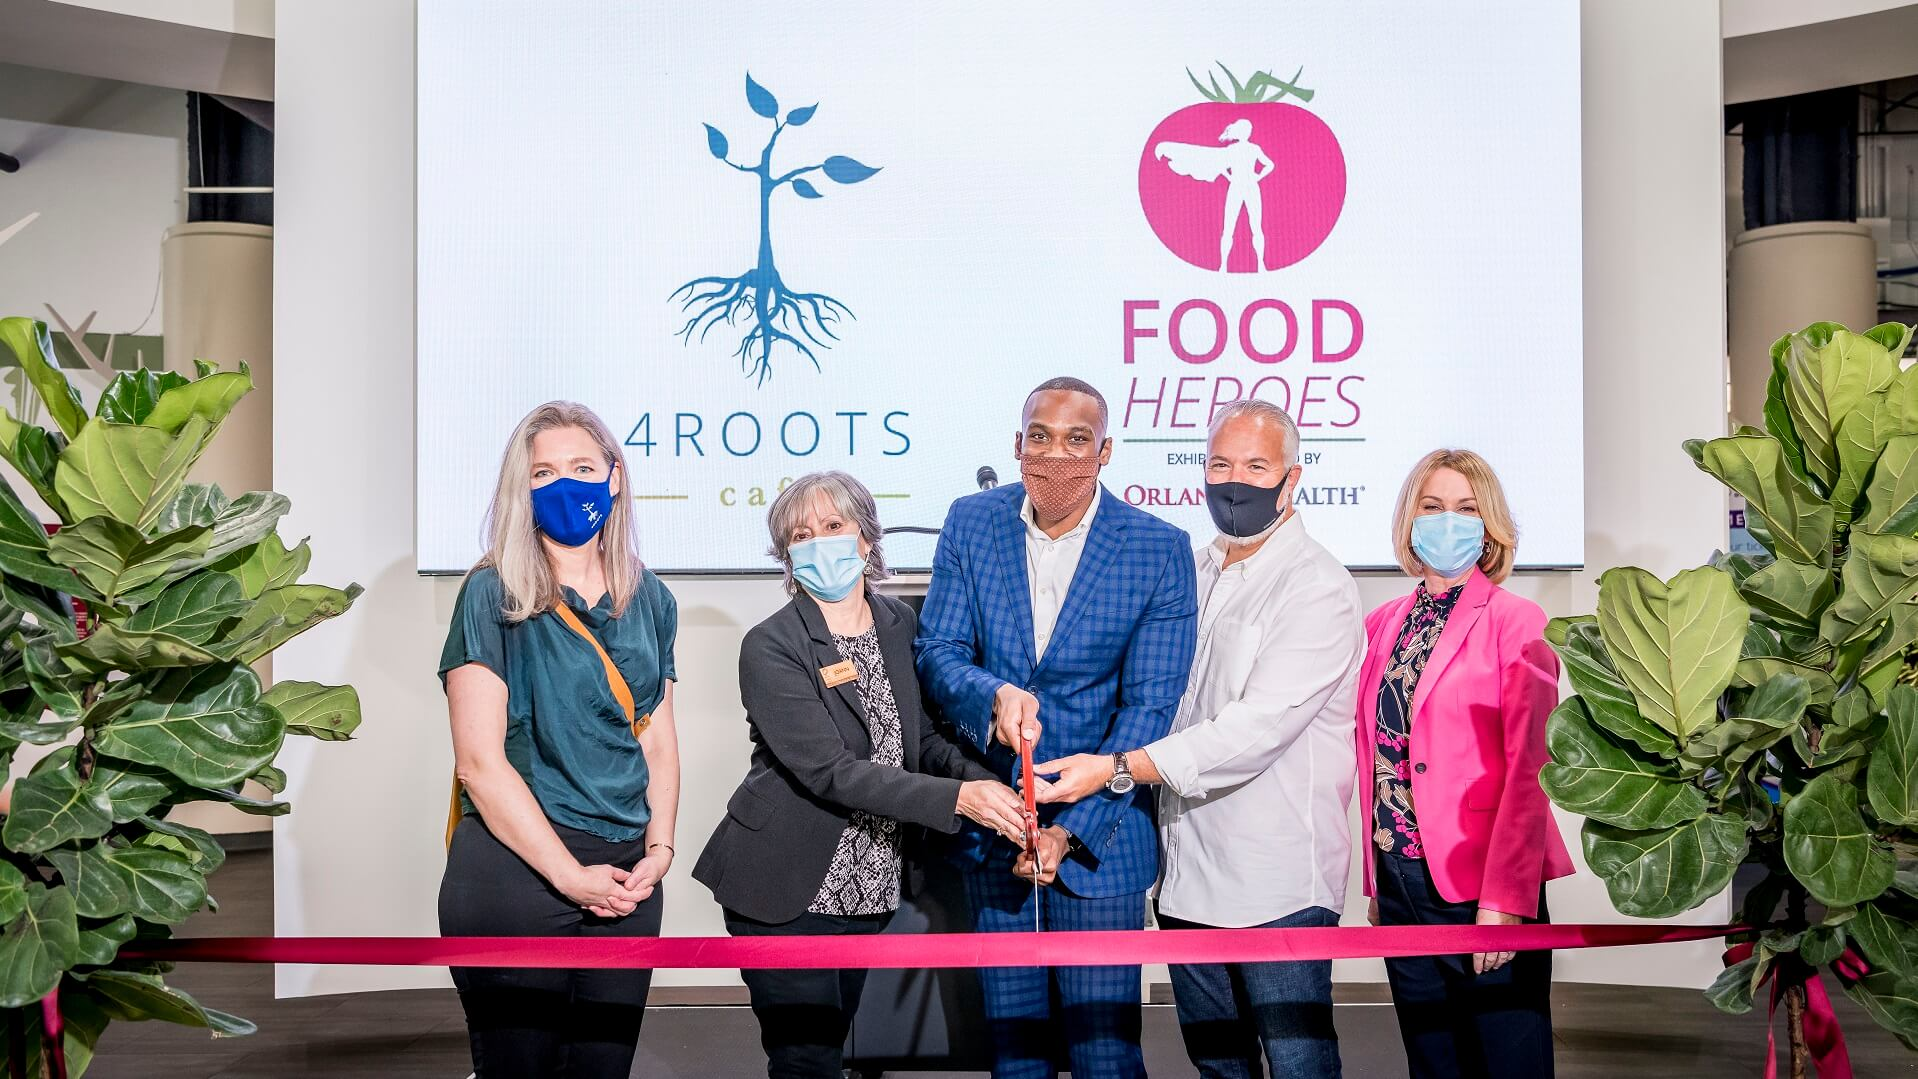 Orlando Science Center, Orlando Health, and 4Roots Farms Campus representatives cutting the ribbon for the new Food Heroes exhibit at Orlando Science Center